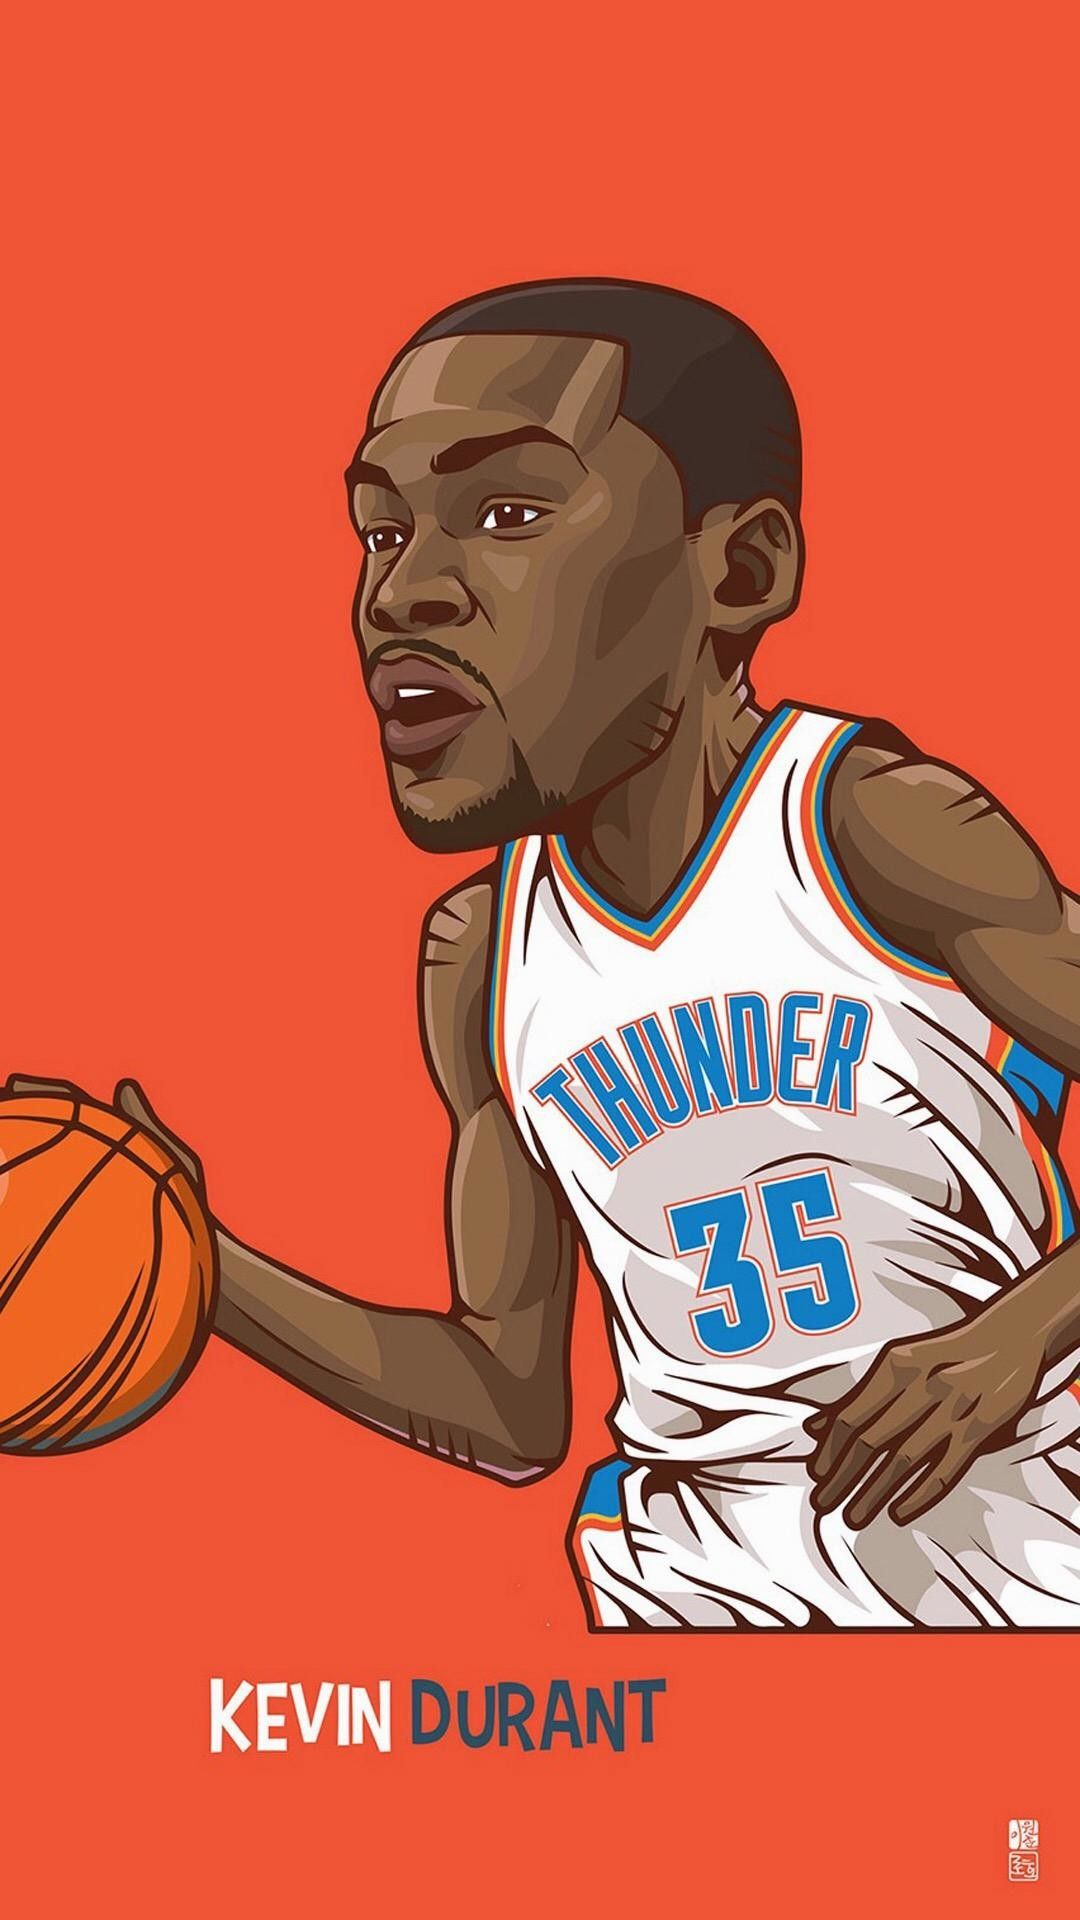 Kevin Durant Wallpaper Iphone Games Wallpapers Ideas in